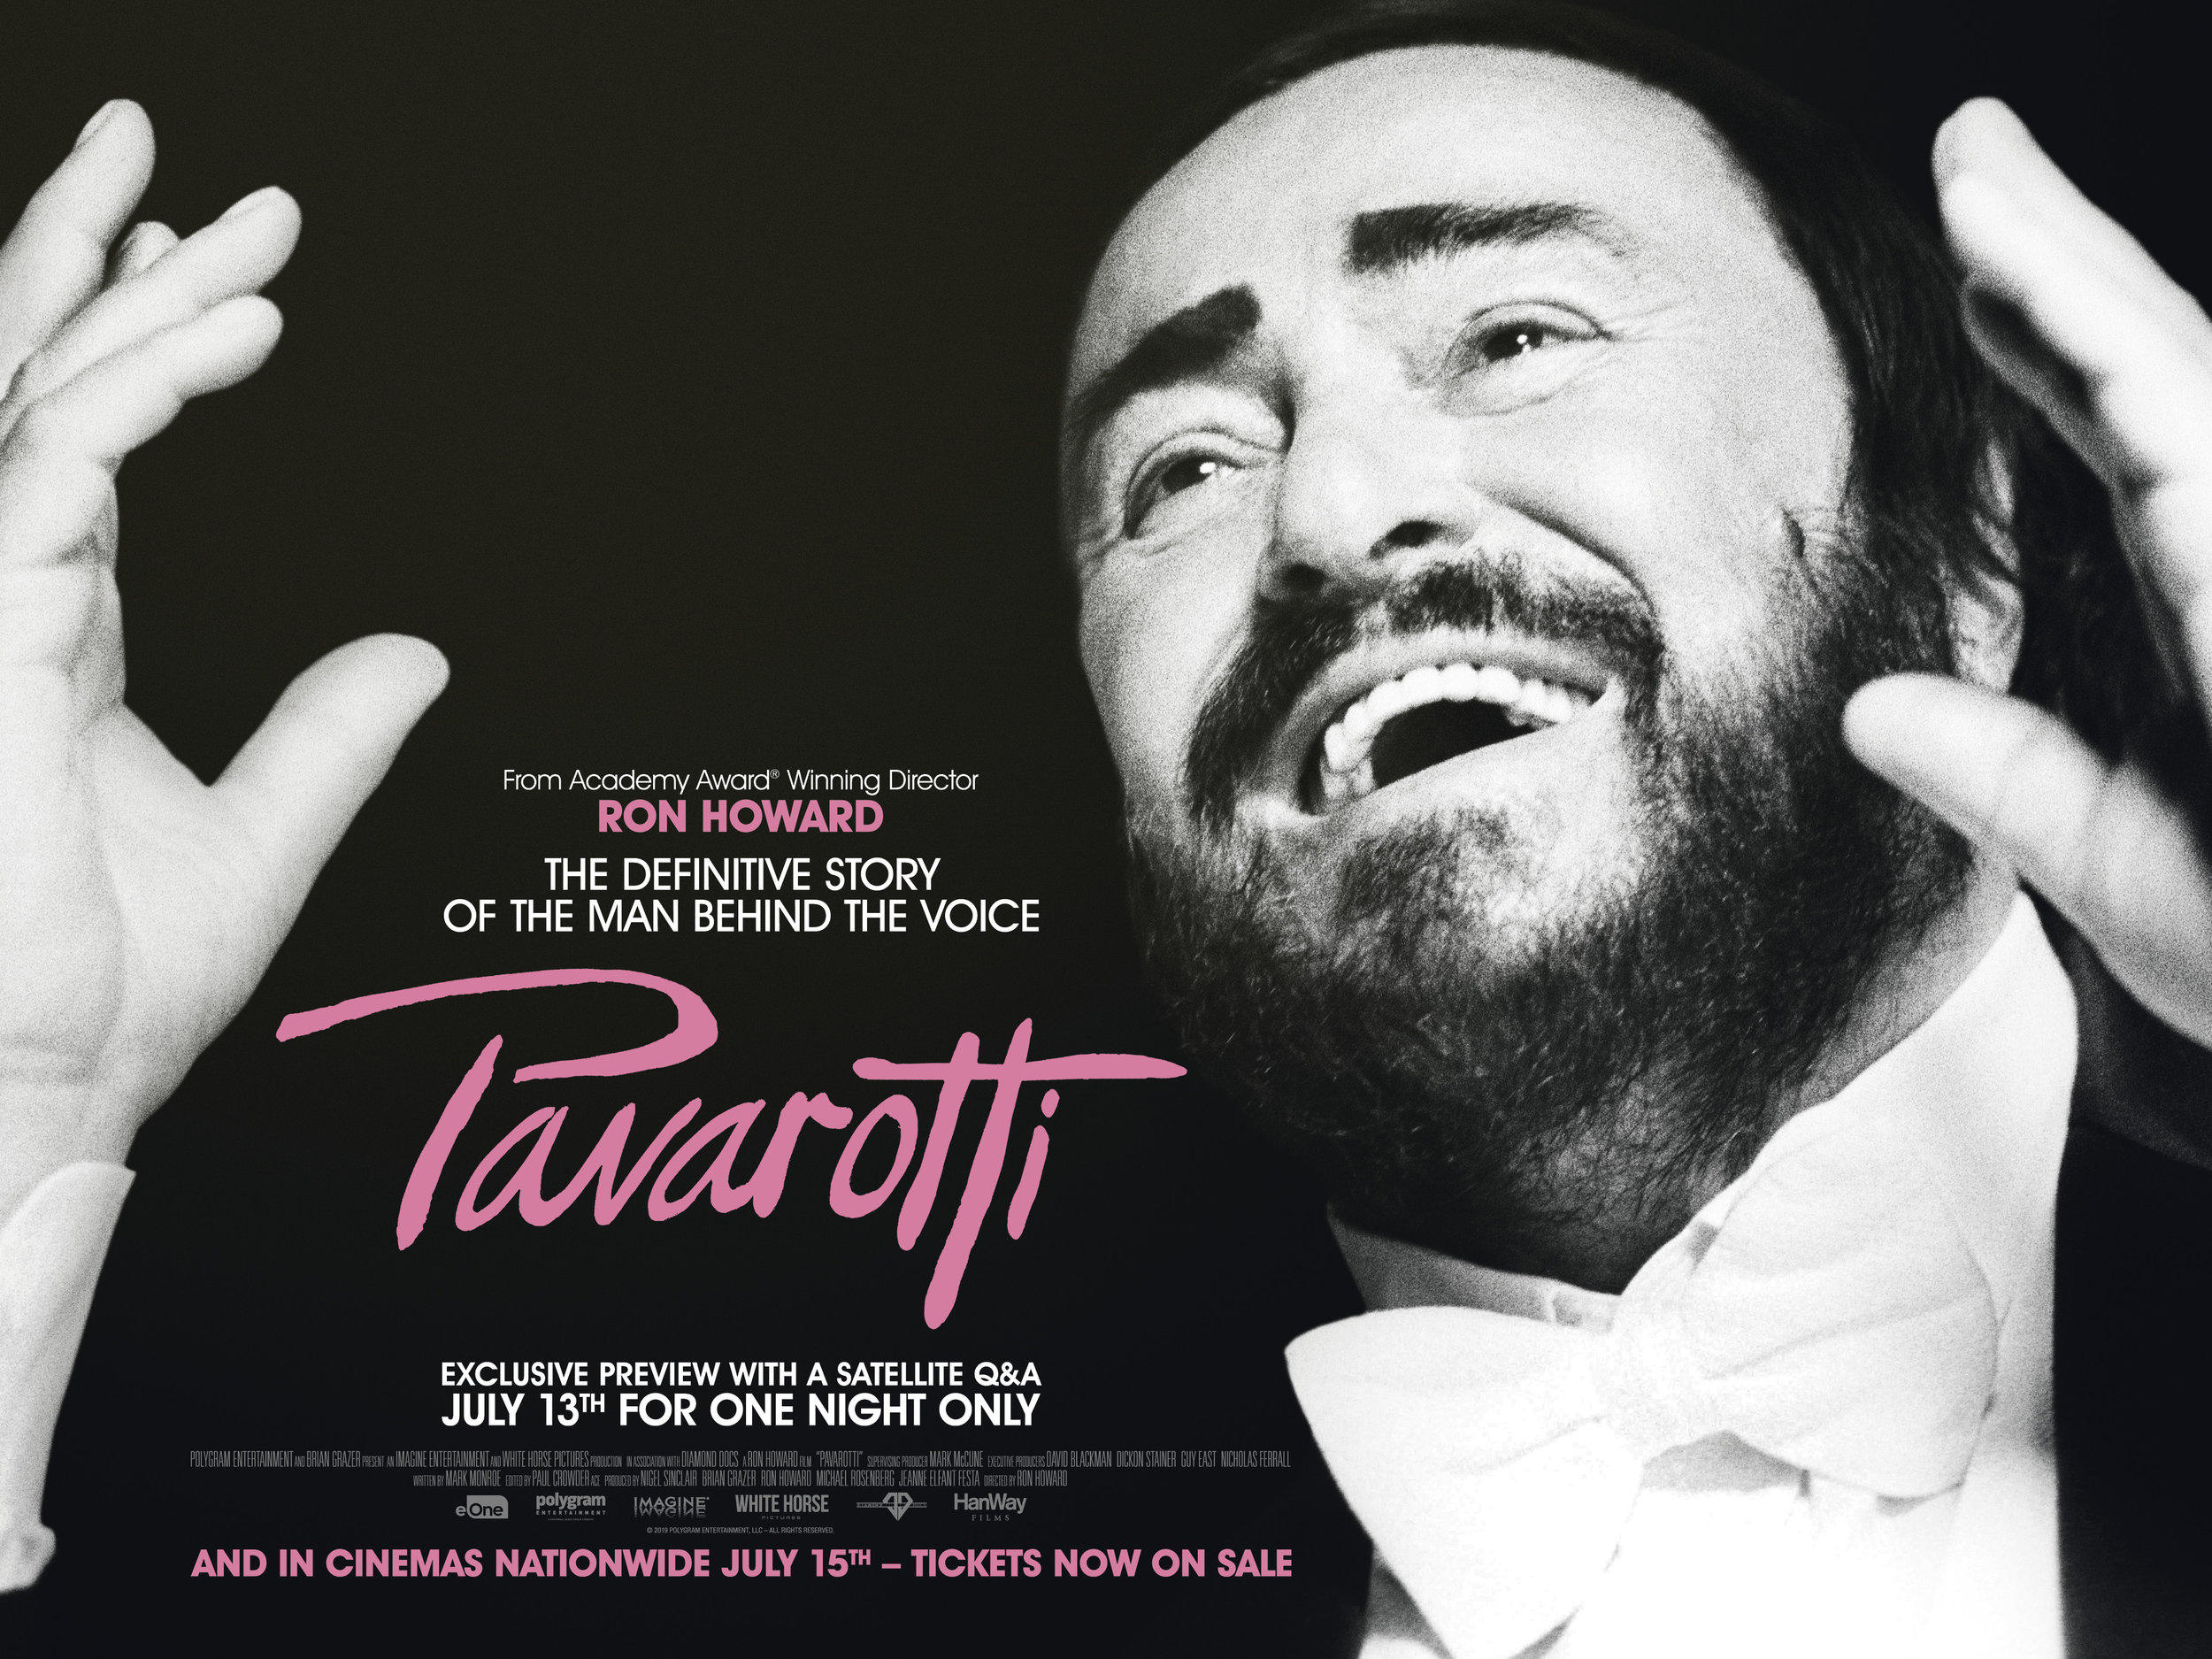 PAVAROTTI - Exclusive information about the film - which can be used to enhance your cinema experience